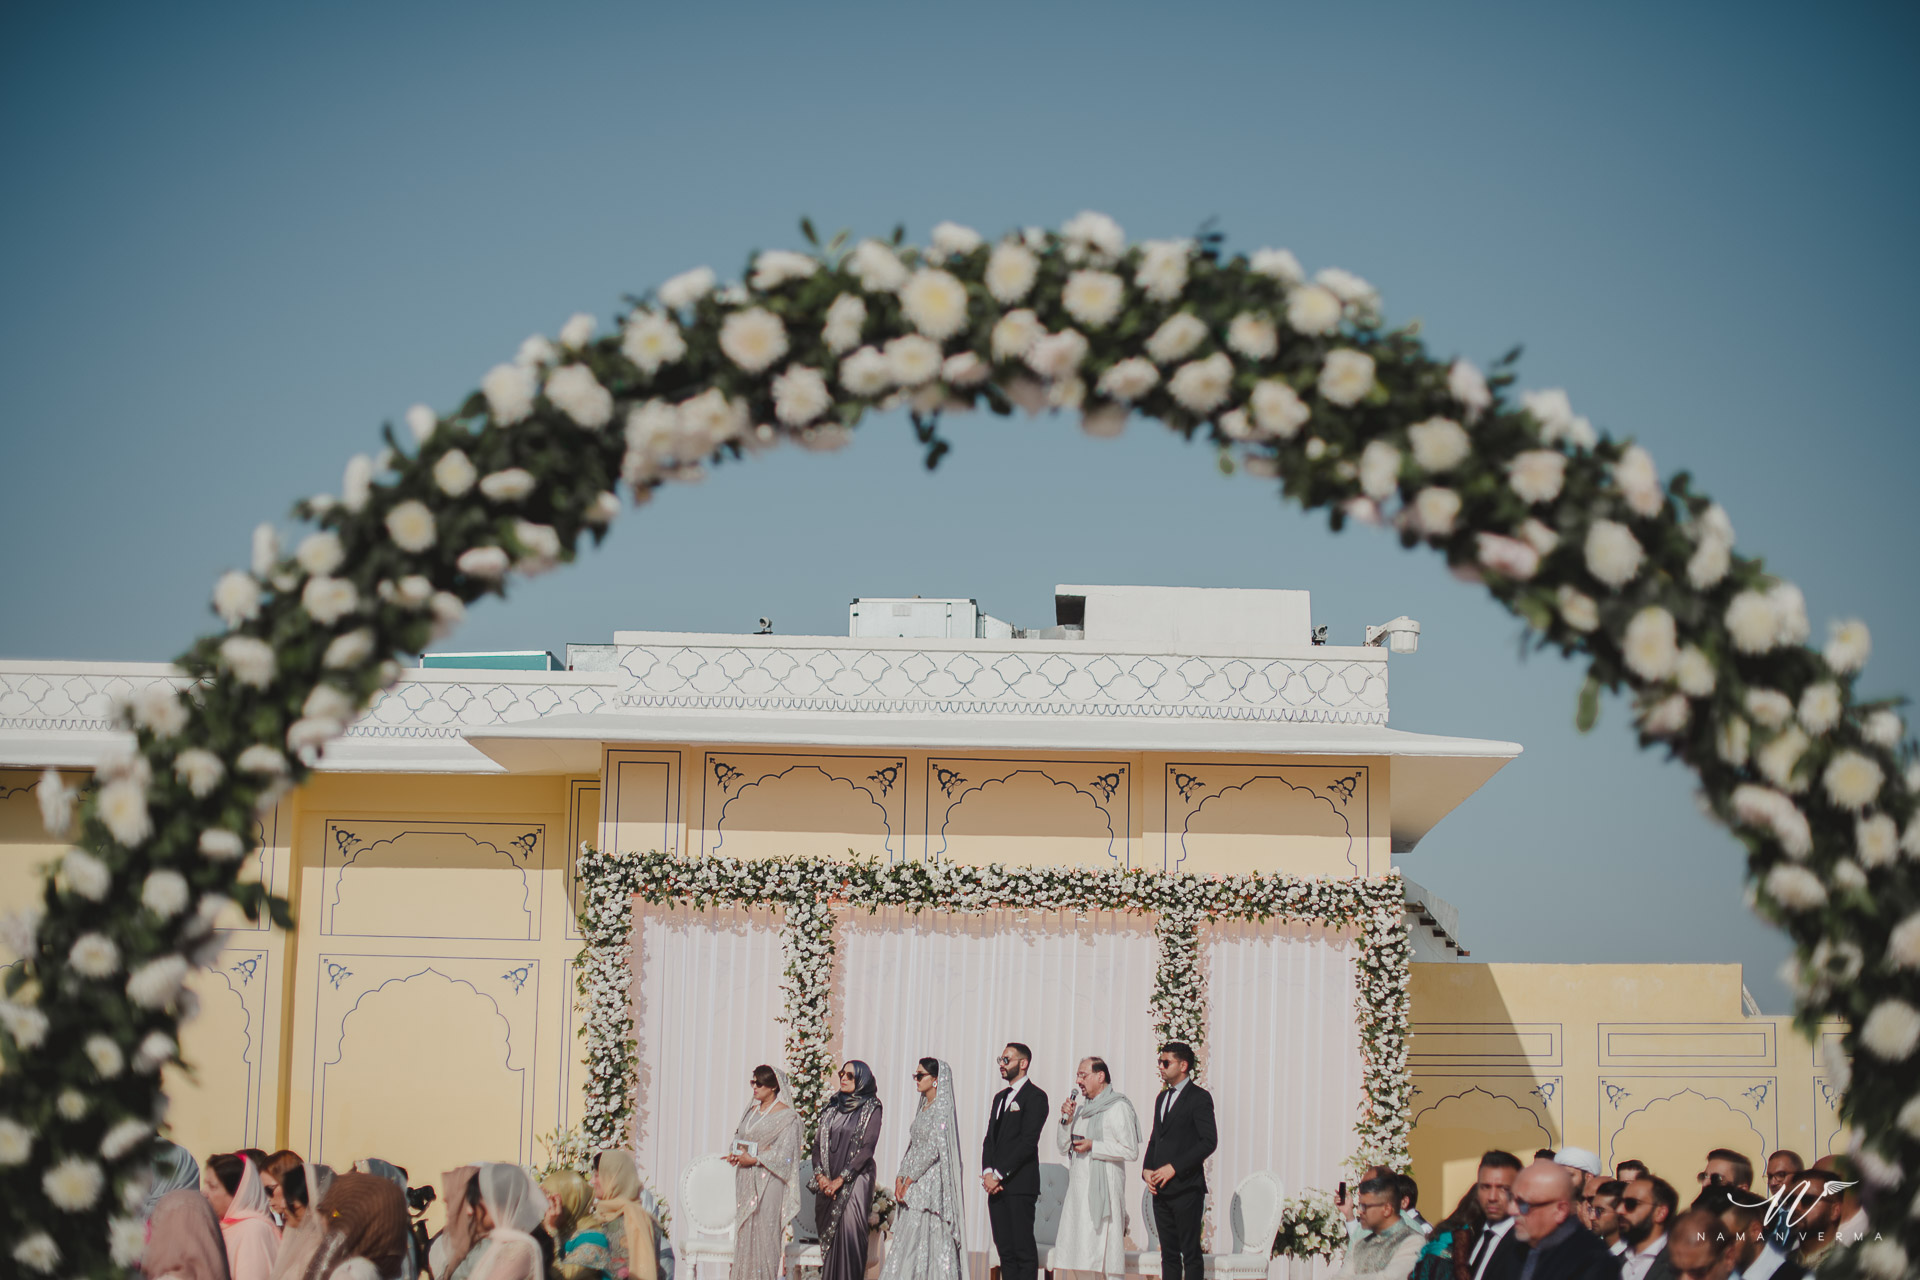 02_NVP_ZAYNABMIKHAIL_WEDDING-3854.jpg